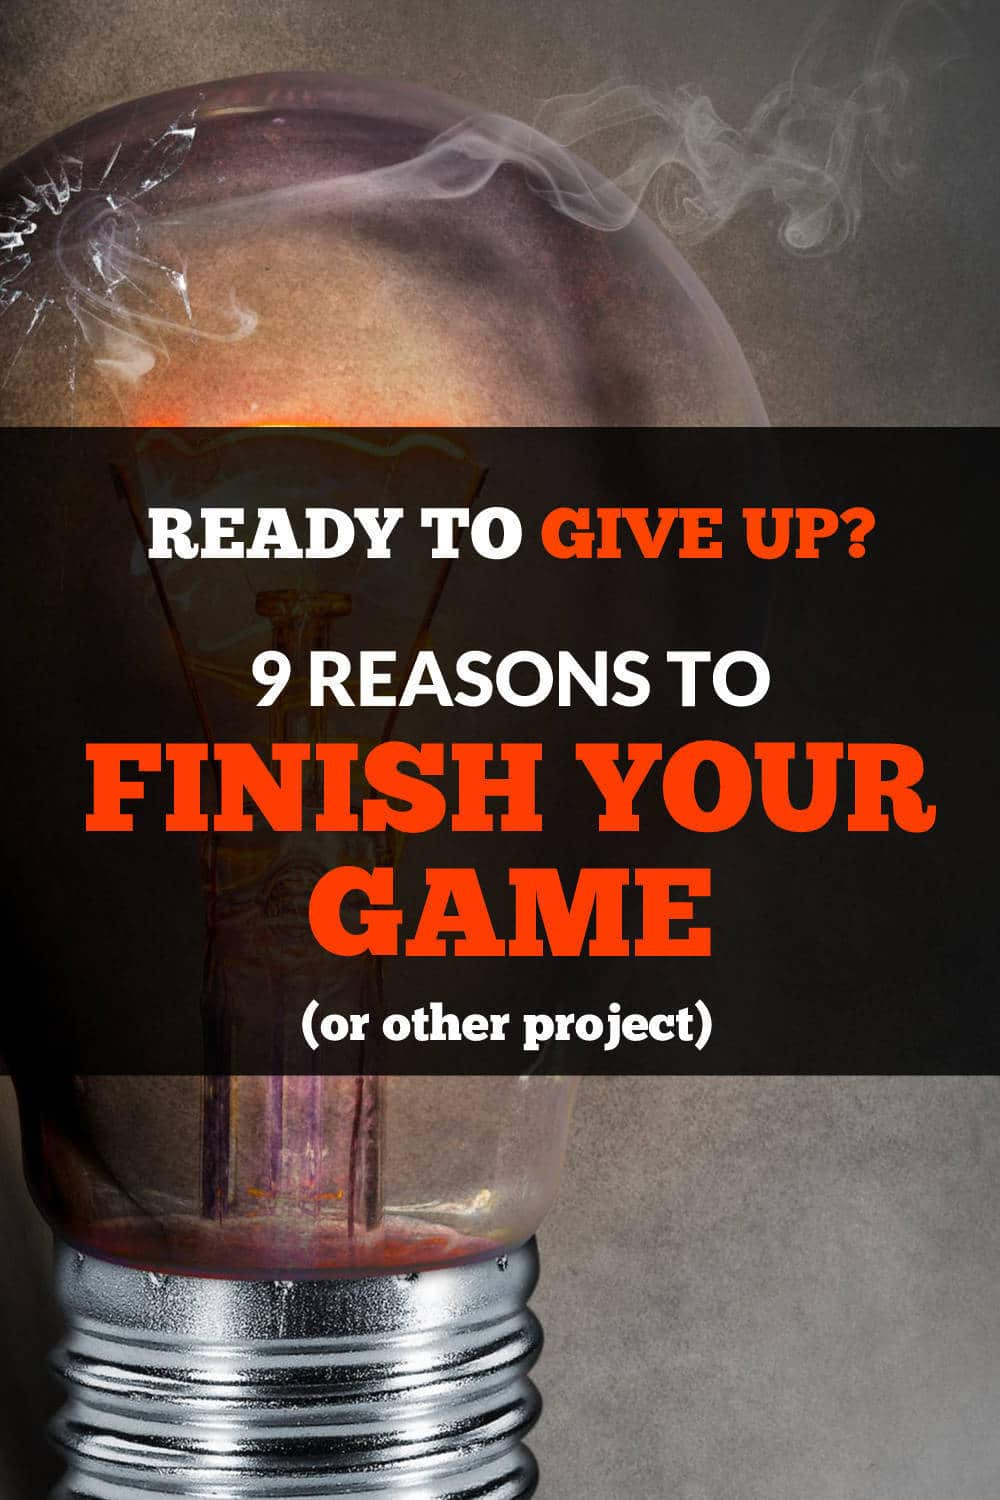 9 reasons to finish your game